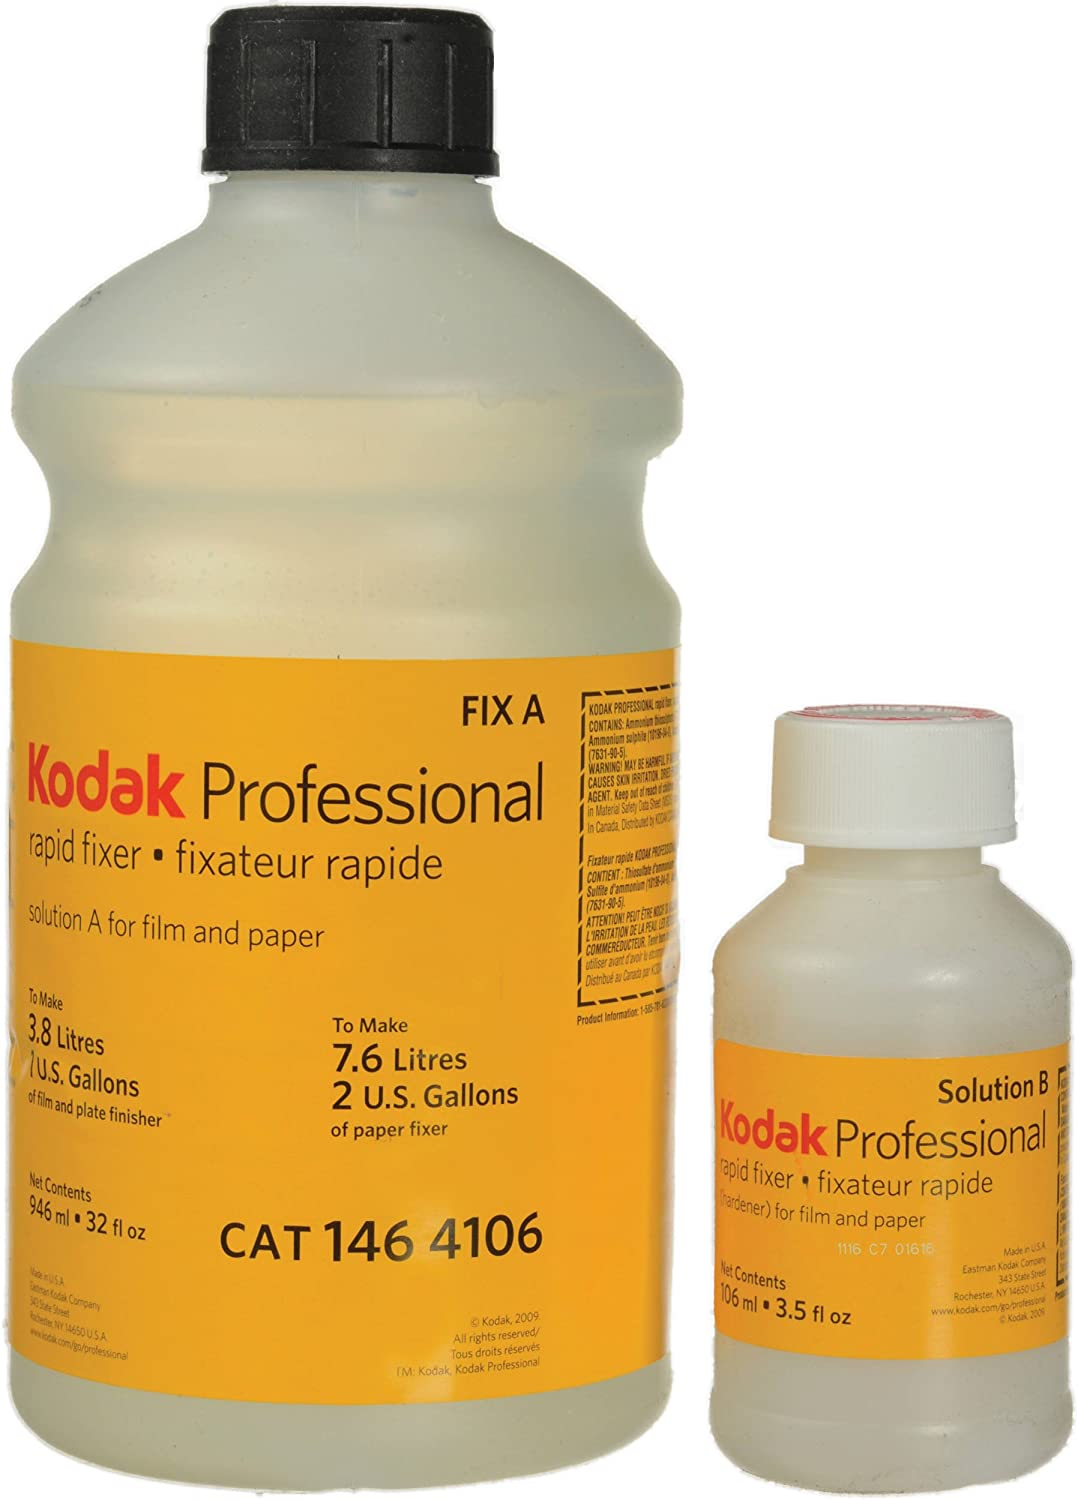 Kodak Rapid Fixer, 5160353 Solutions A & B for Black & White Film & Paper - Makes 1 Gallon for Film/ 2 Gallons for Paper 5160353